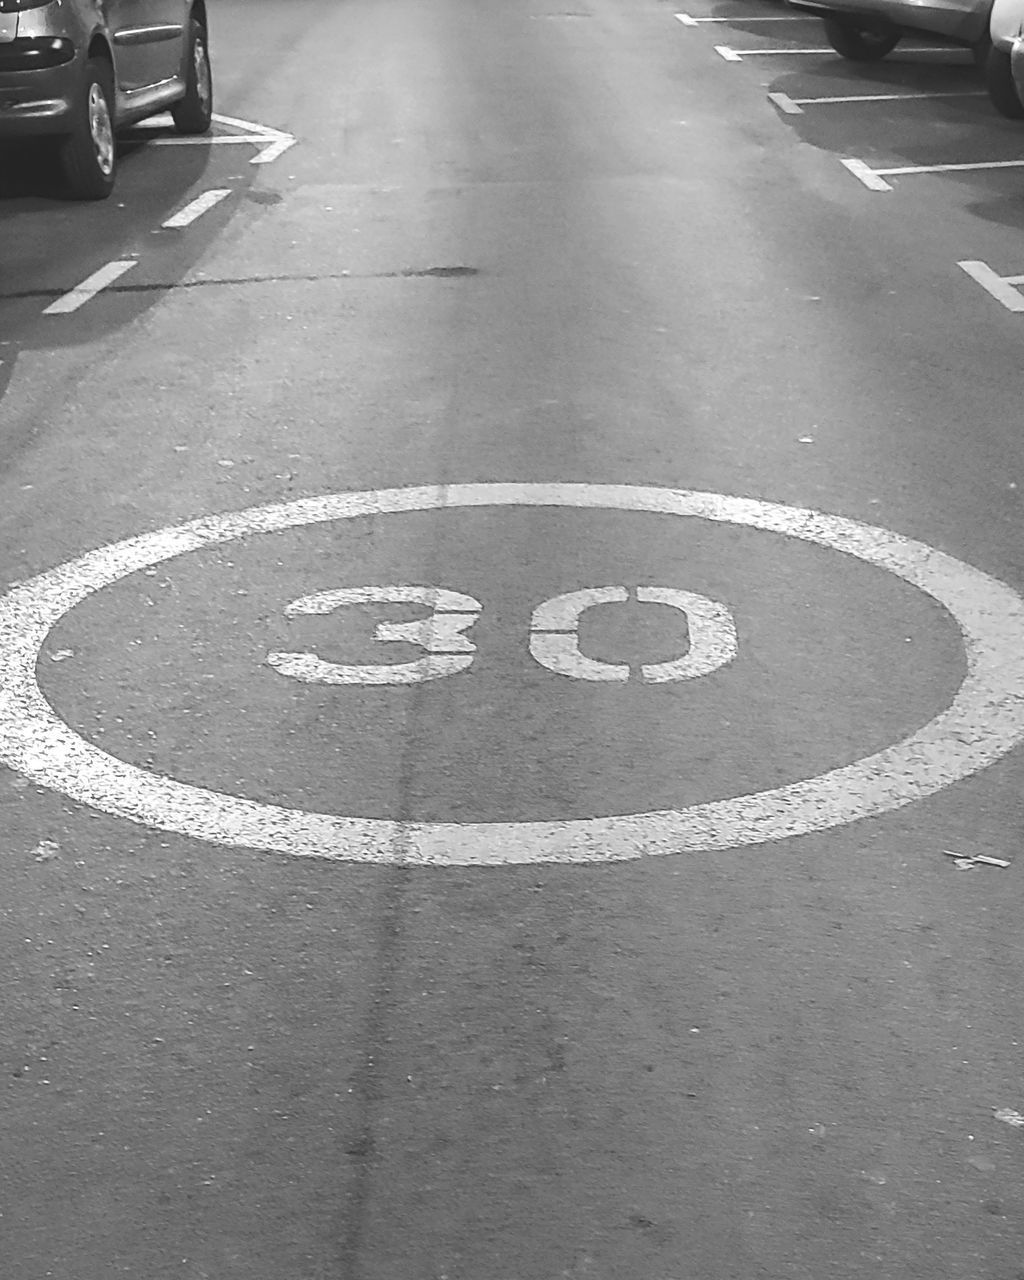 sign, symbol, transportation, communication, road, city, road marking, street, high angle view, marking, no people, day, guidance, land vehicle, mode of transportation, text, outdoors, number, car, safety